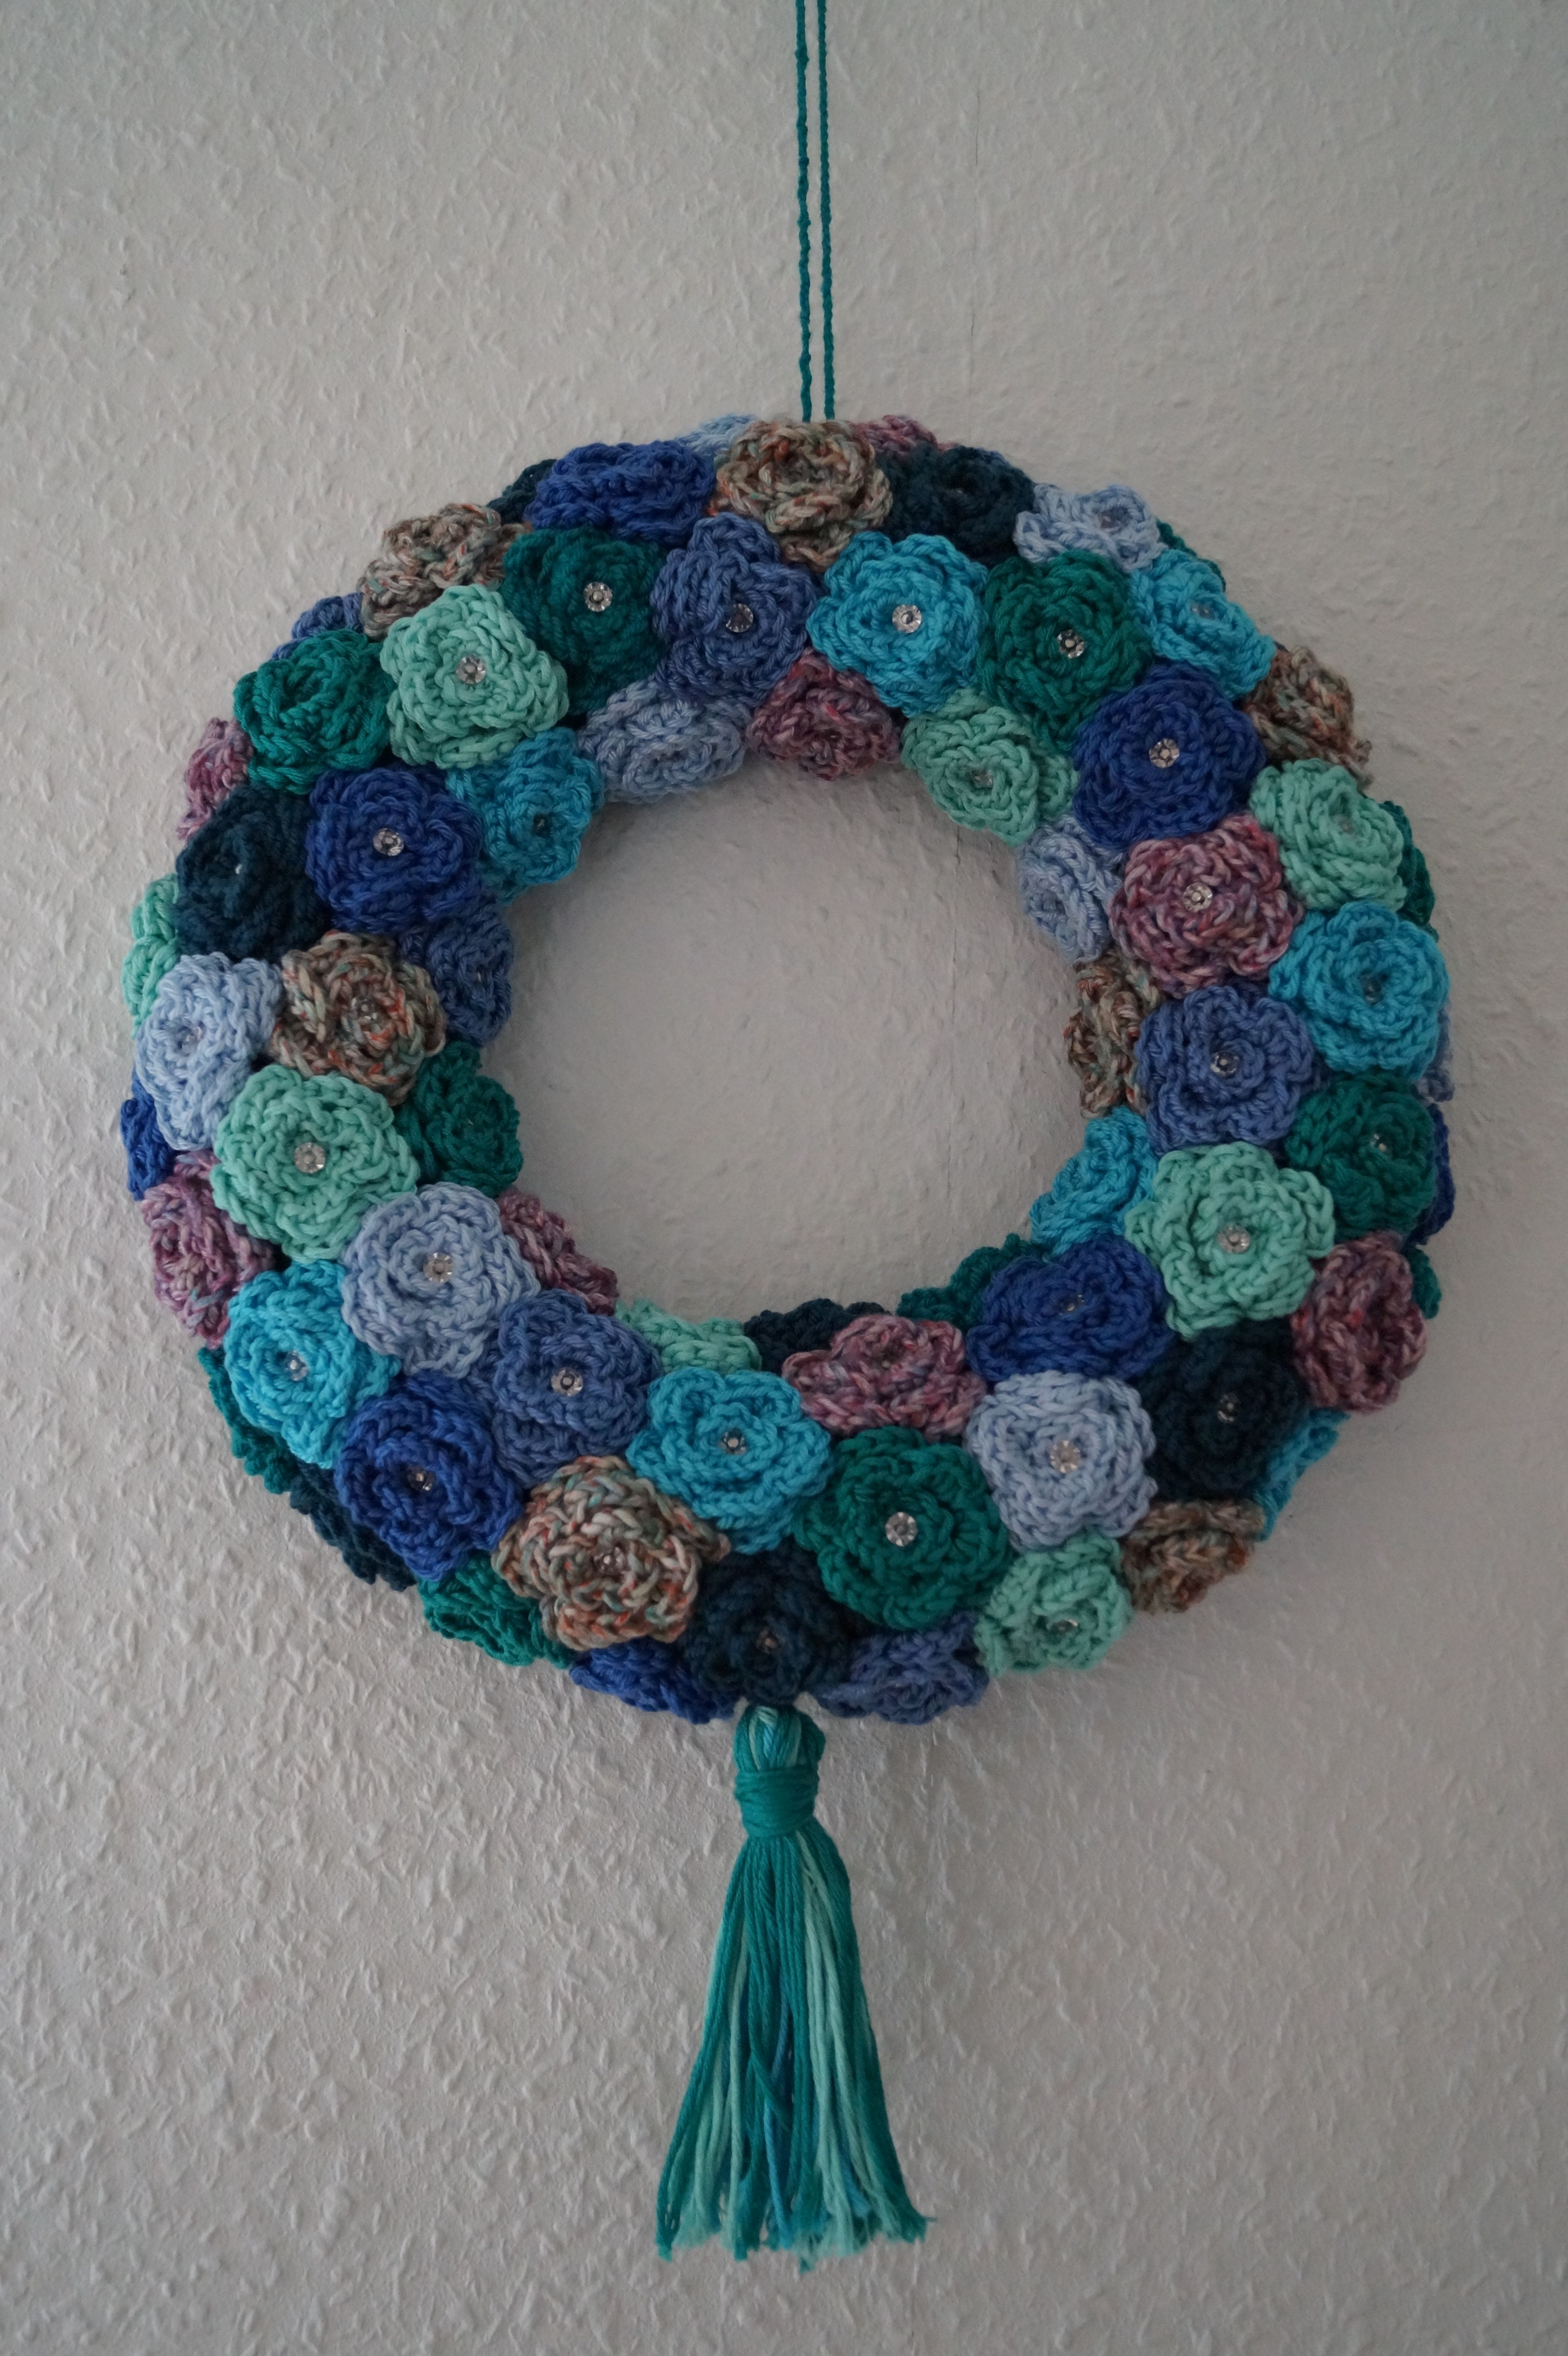 crochet wreath using rose pattern info about tutorial | Wreathes by ...